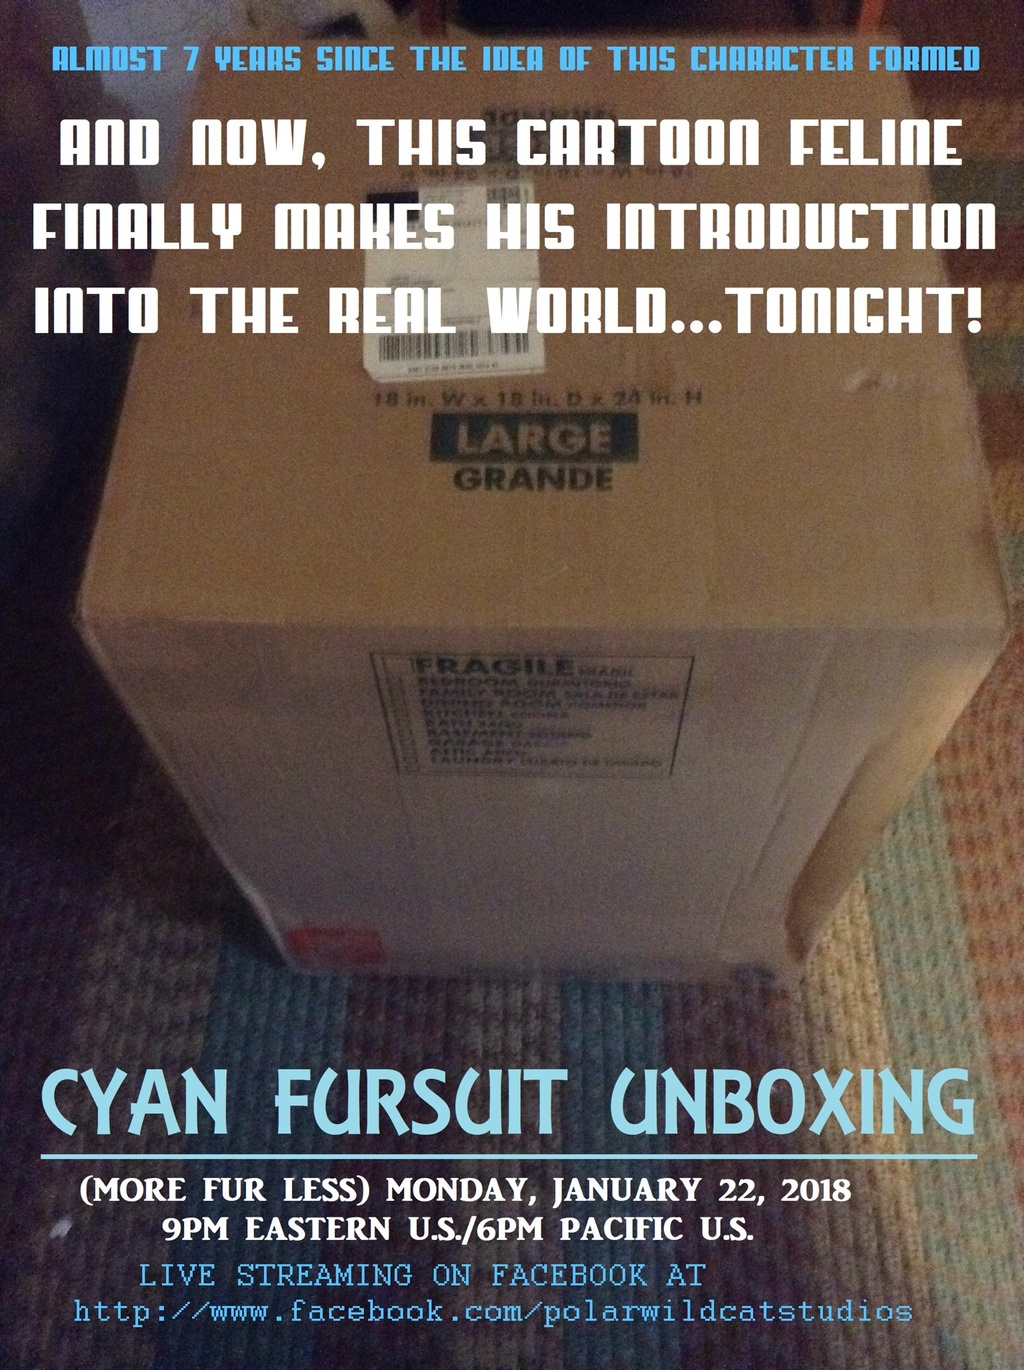 LIVE FURSUIT UNBOXING - Tonight at 9PM Eastern/6PM Pacific